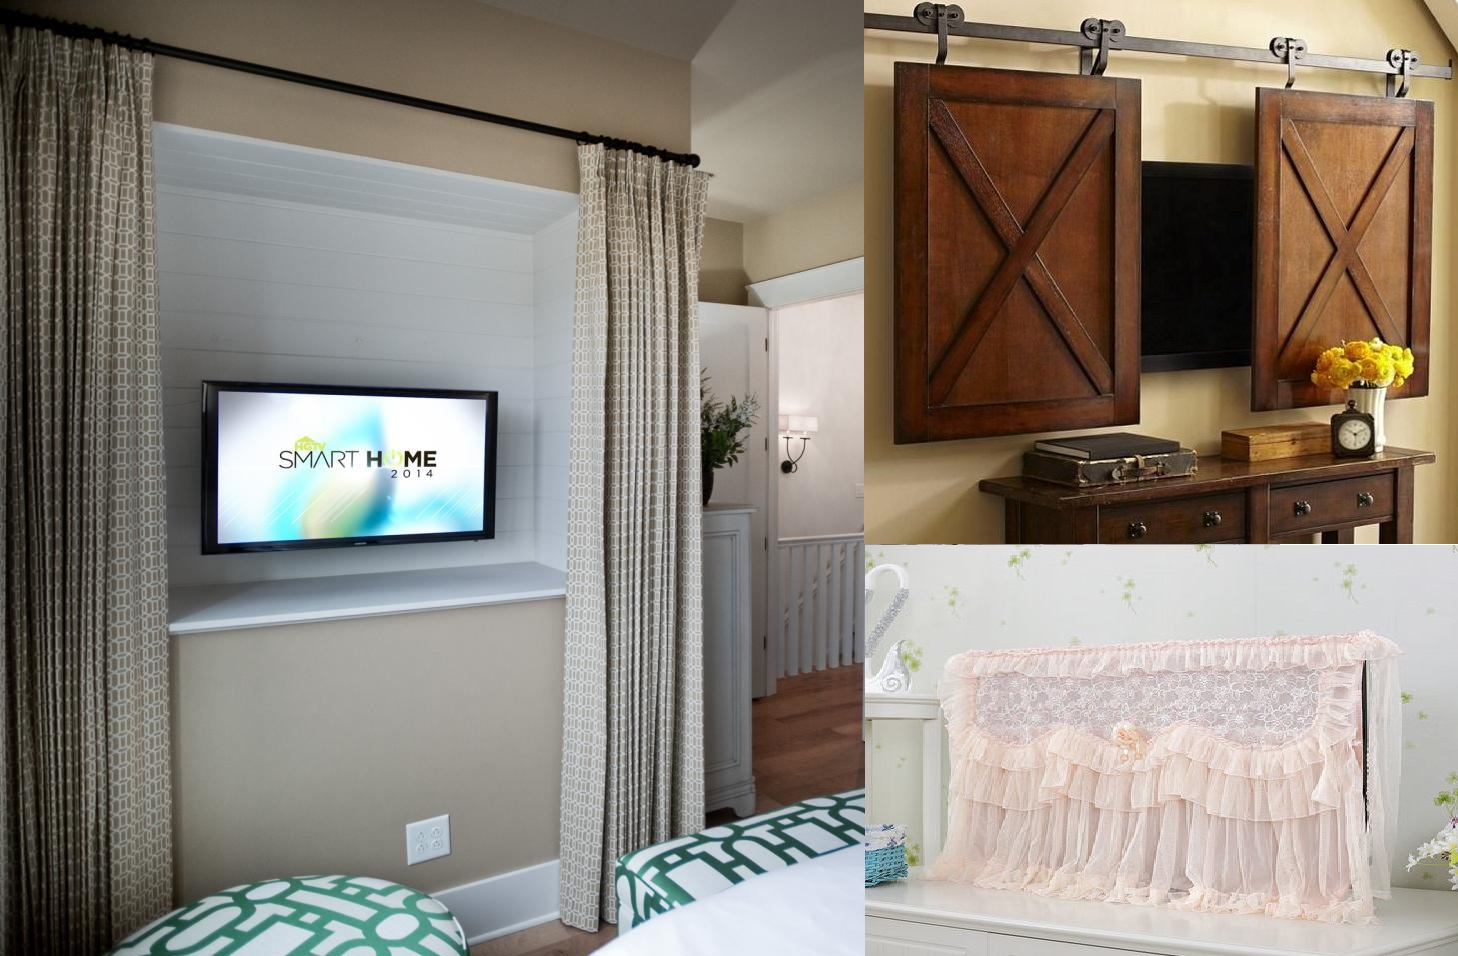 hiding tv in living room how to decorate a small with fireplace the middle 8 smart ways hide your wma property